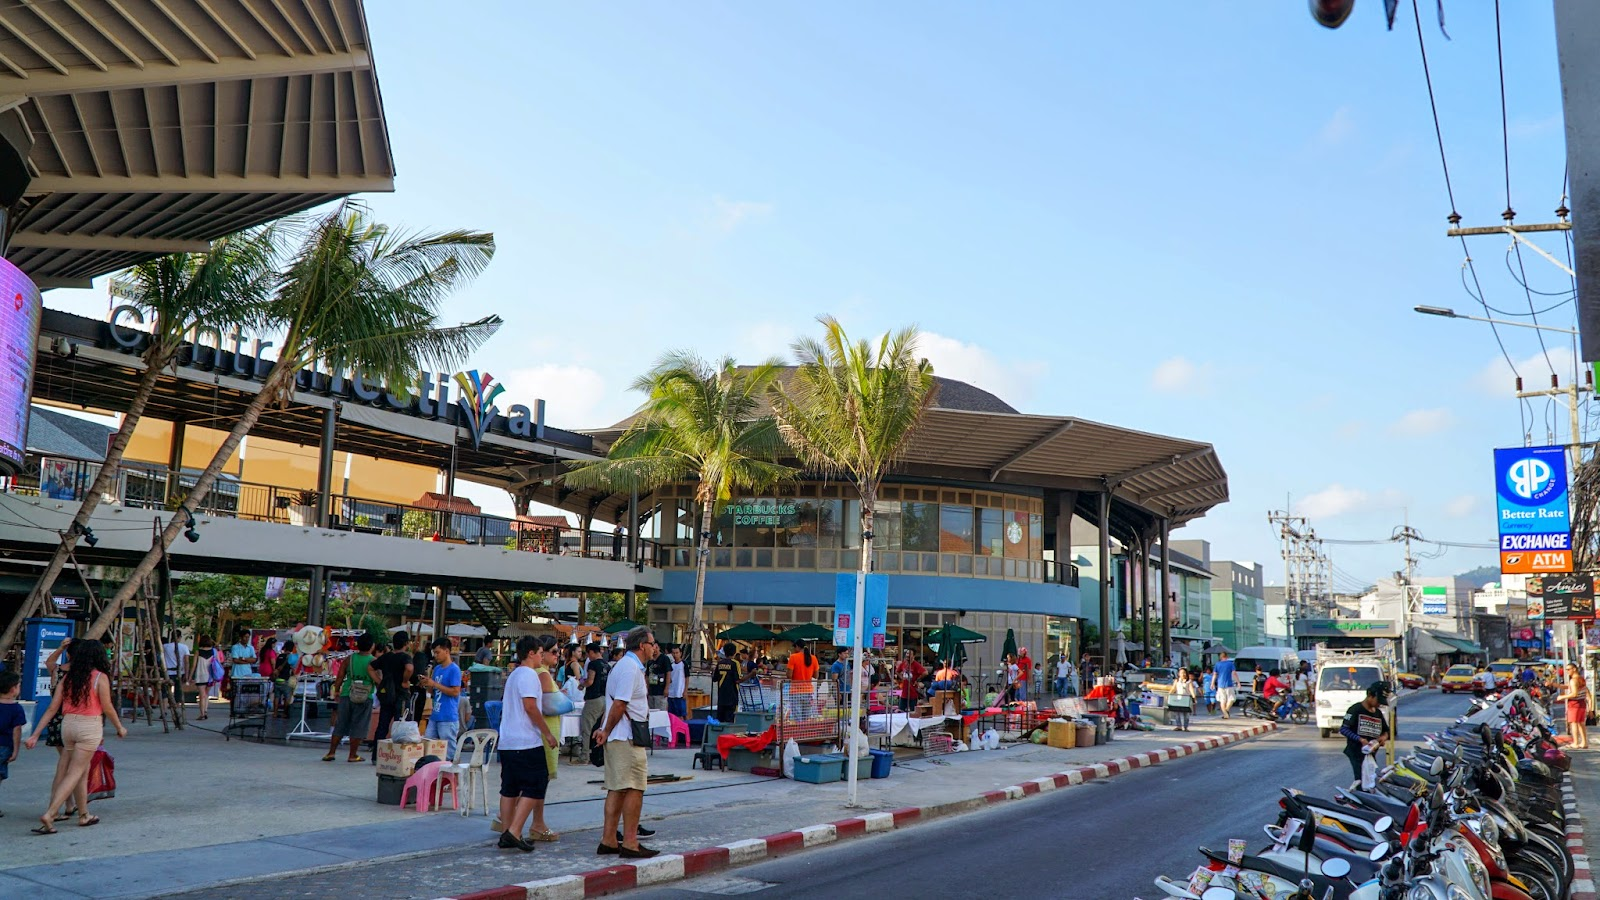 Central Festival Samui. The night market is just only setting up, guess I will come back later